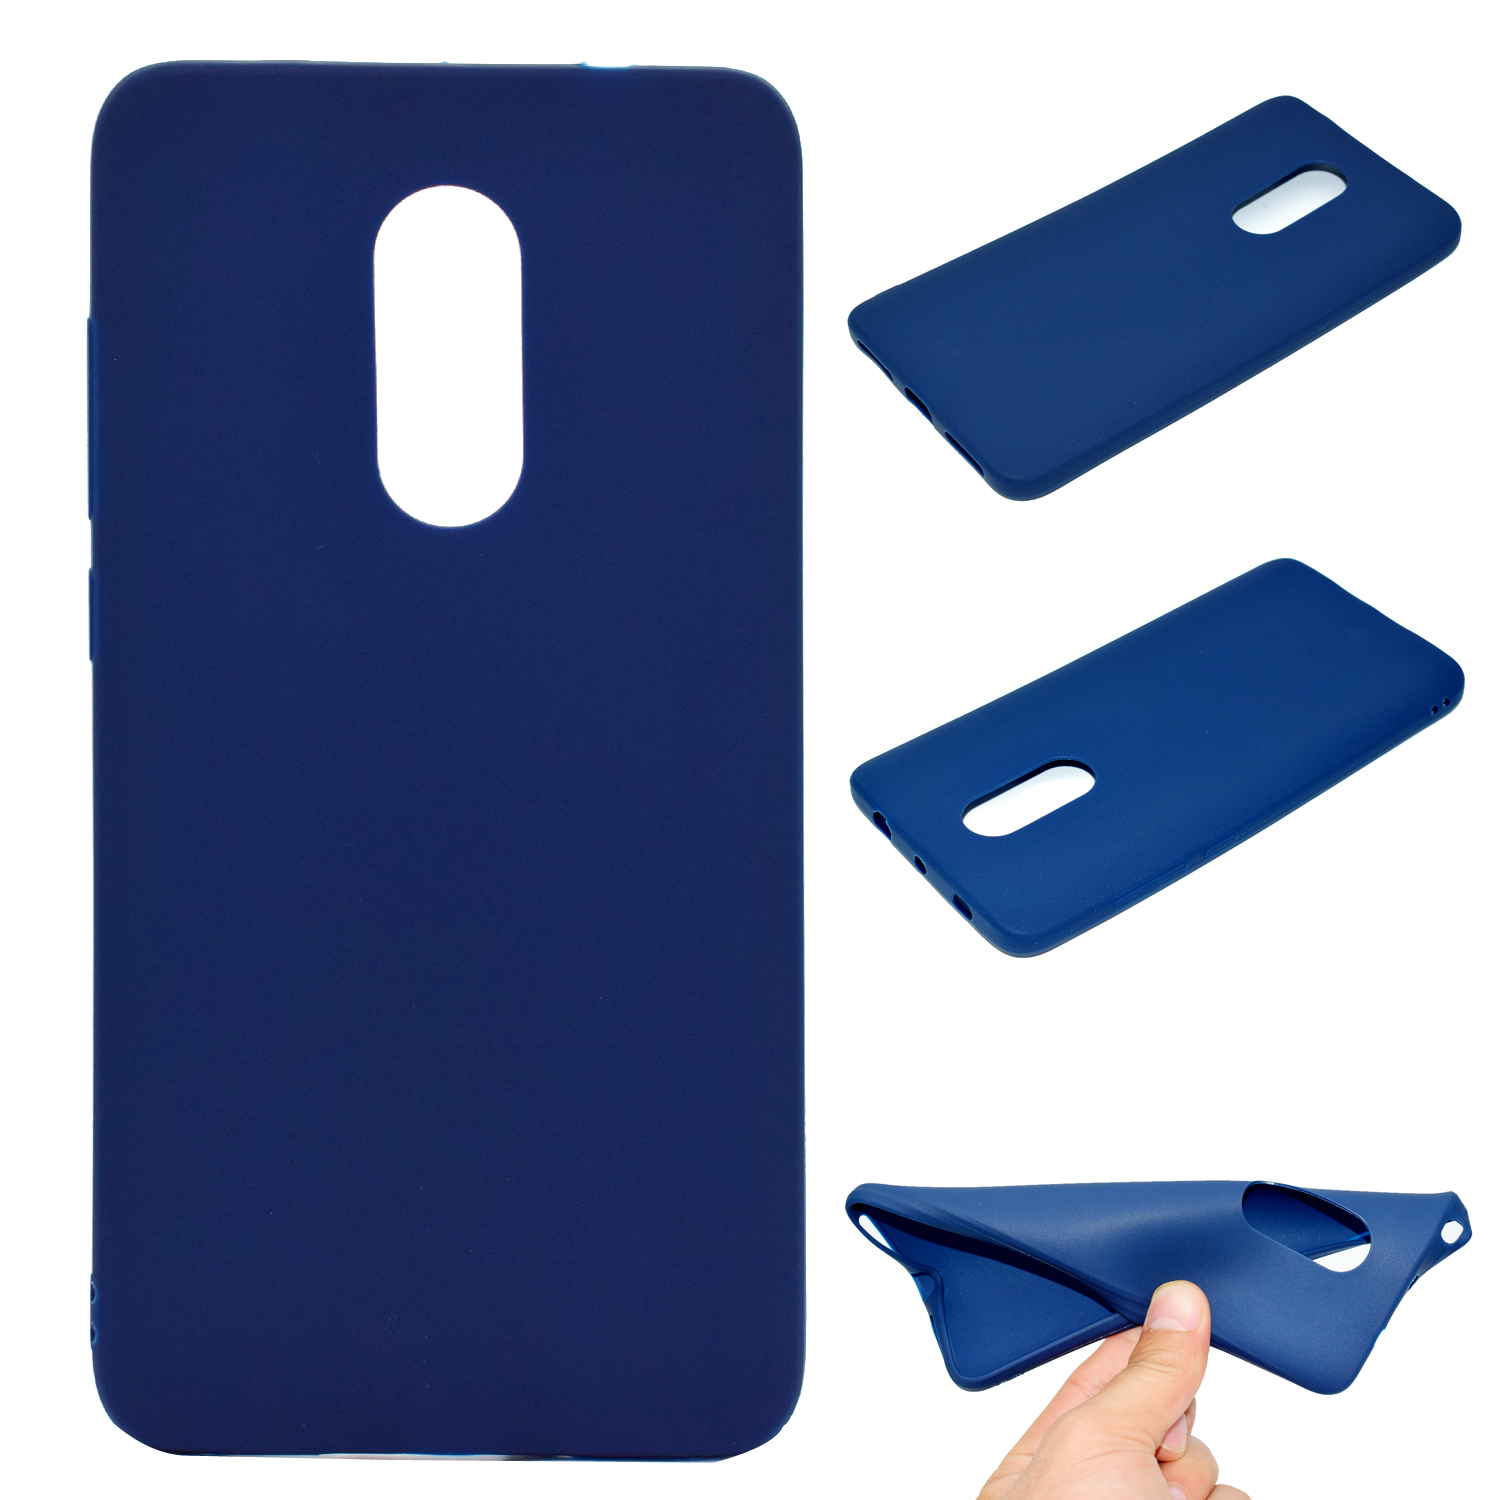 for XIAOMI Redmi NOTE 4X/NOTE 4 Lovely Candy Color Matte TPU Anti-scratch Non-slip Protective Cover Back Case Navy